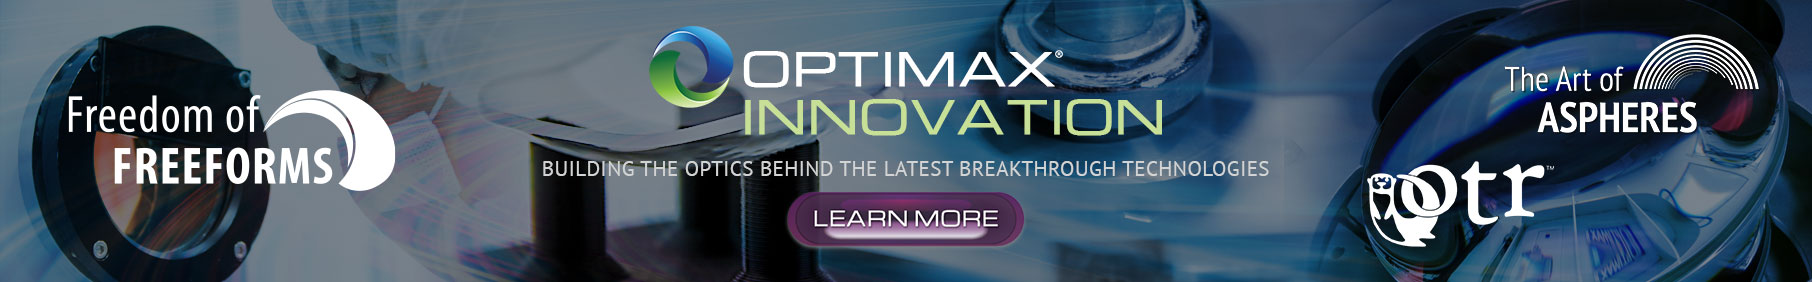 Optimax Innovation